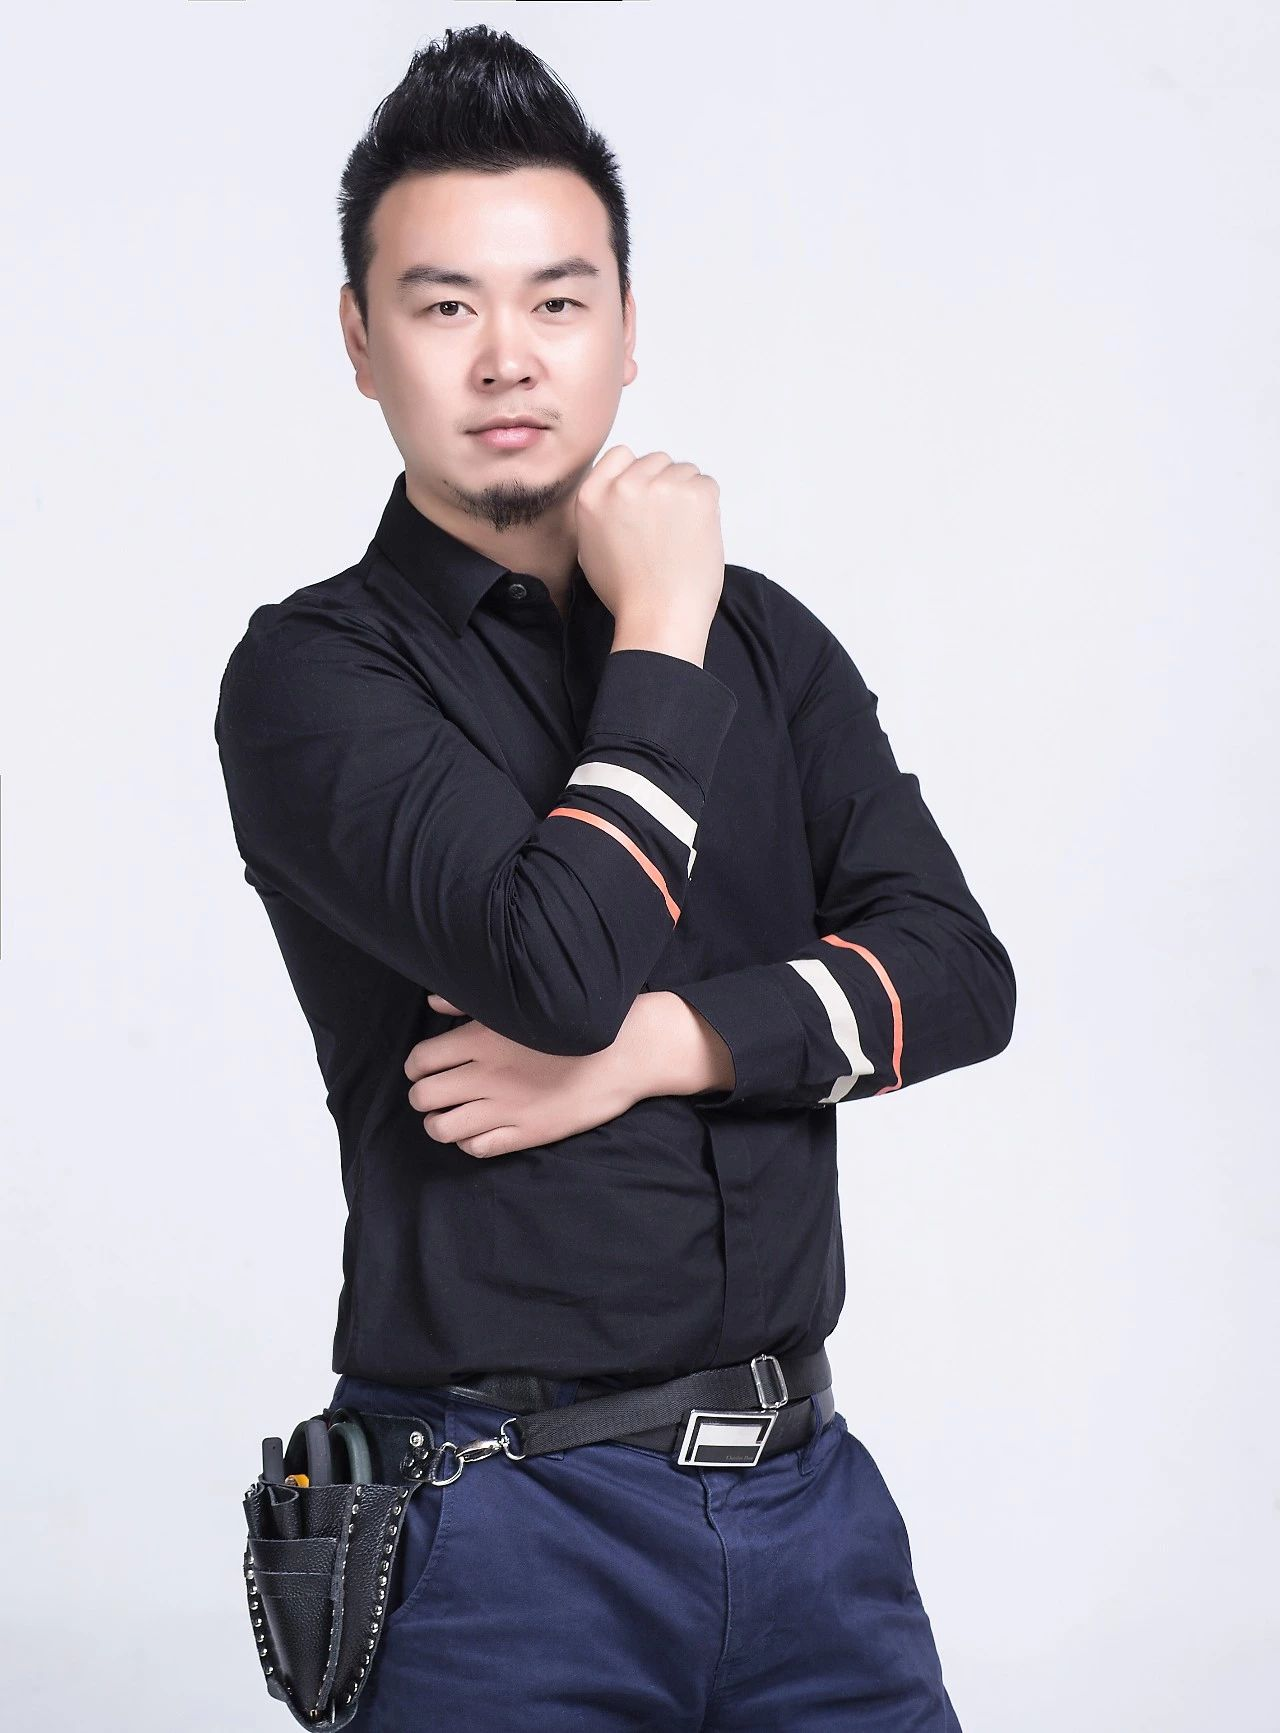 Andy 顾